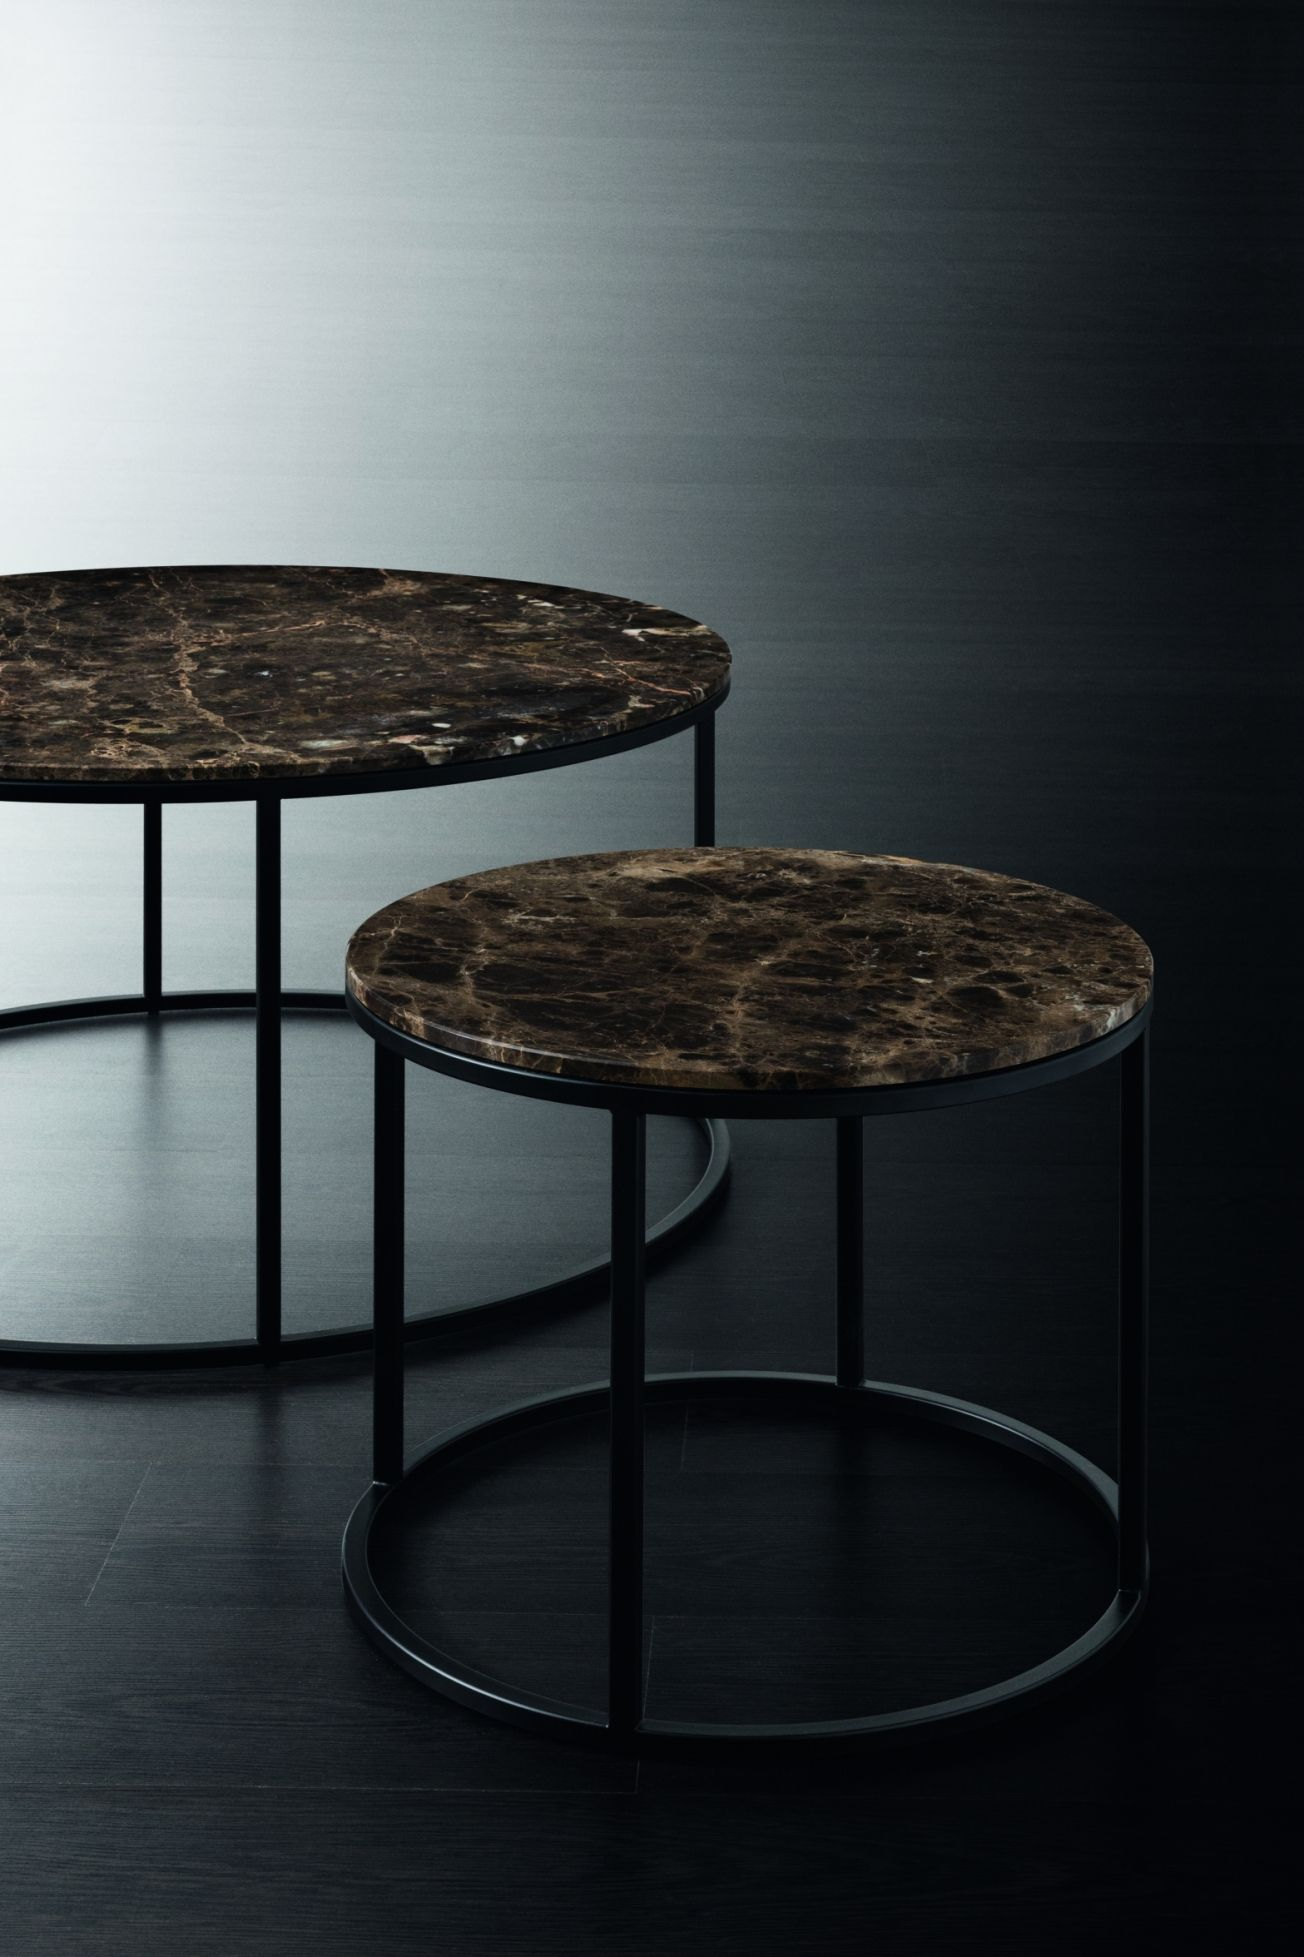 Blom is a stunning table with a